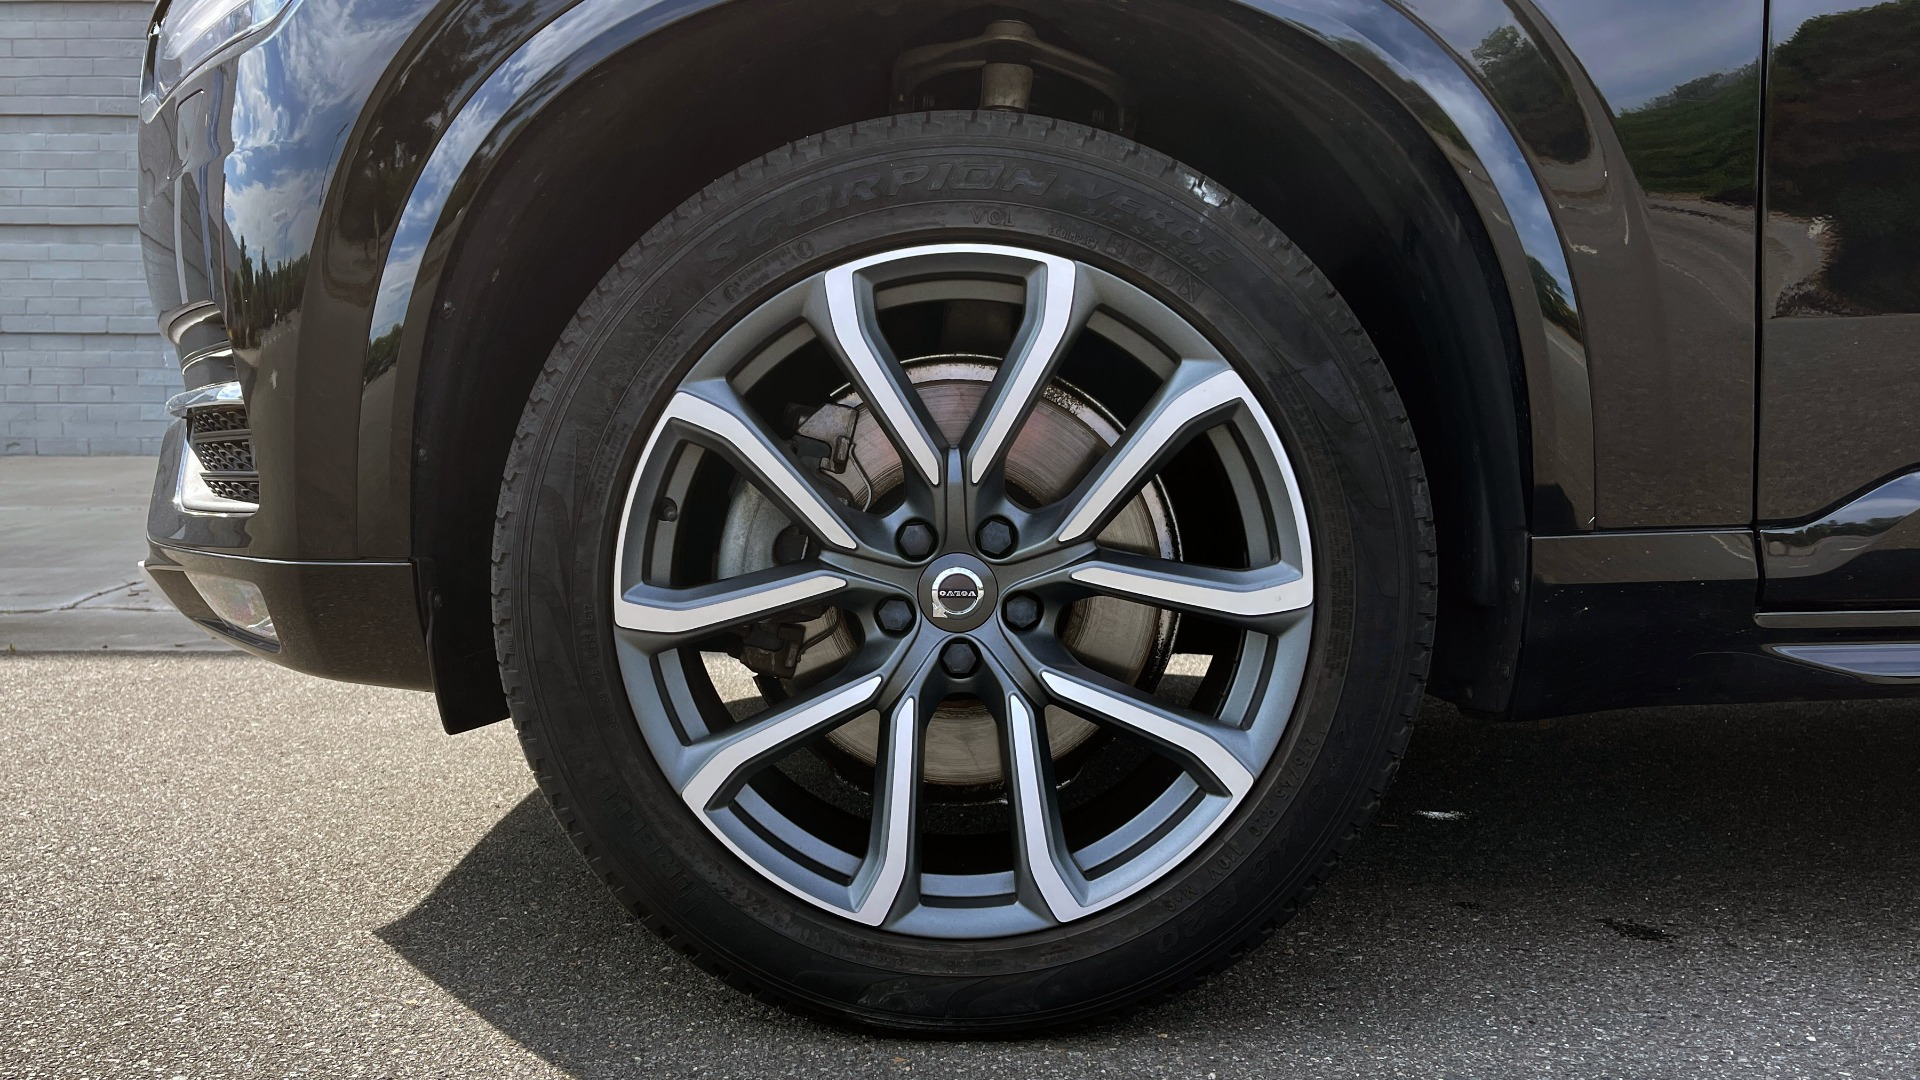 Used 2018 Volvo XC90 T5 AWD MOMENTUM PLUS / NAV / SUNROOF / 3-ROW / REARVIEW for sale $40,295 at Formula Imports in Charlotte NC 28227 83